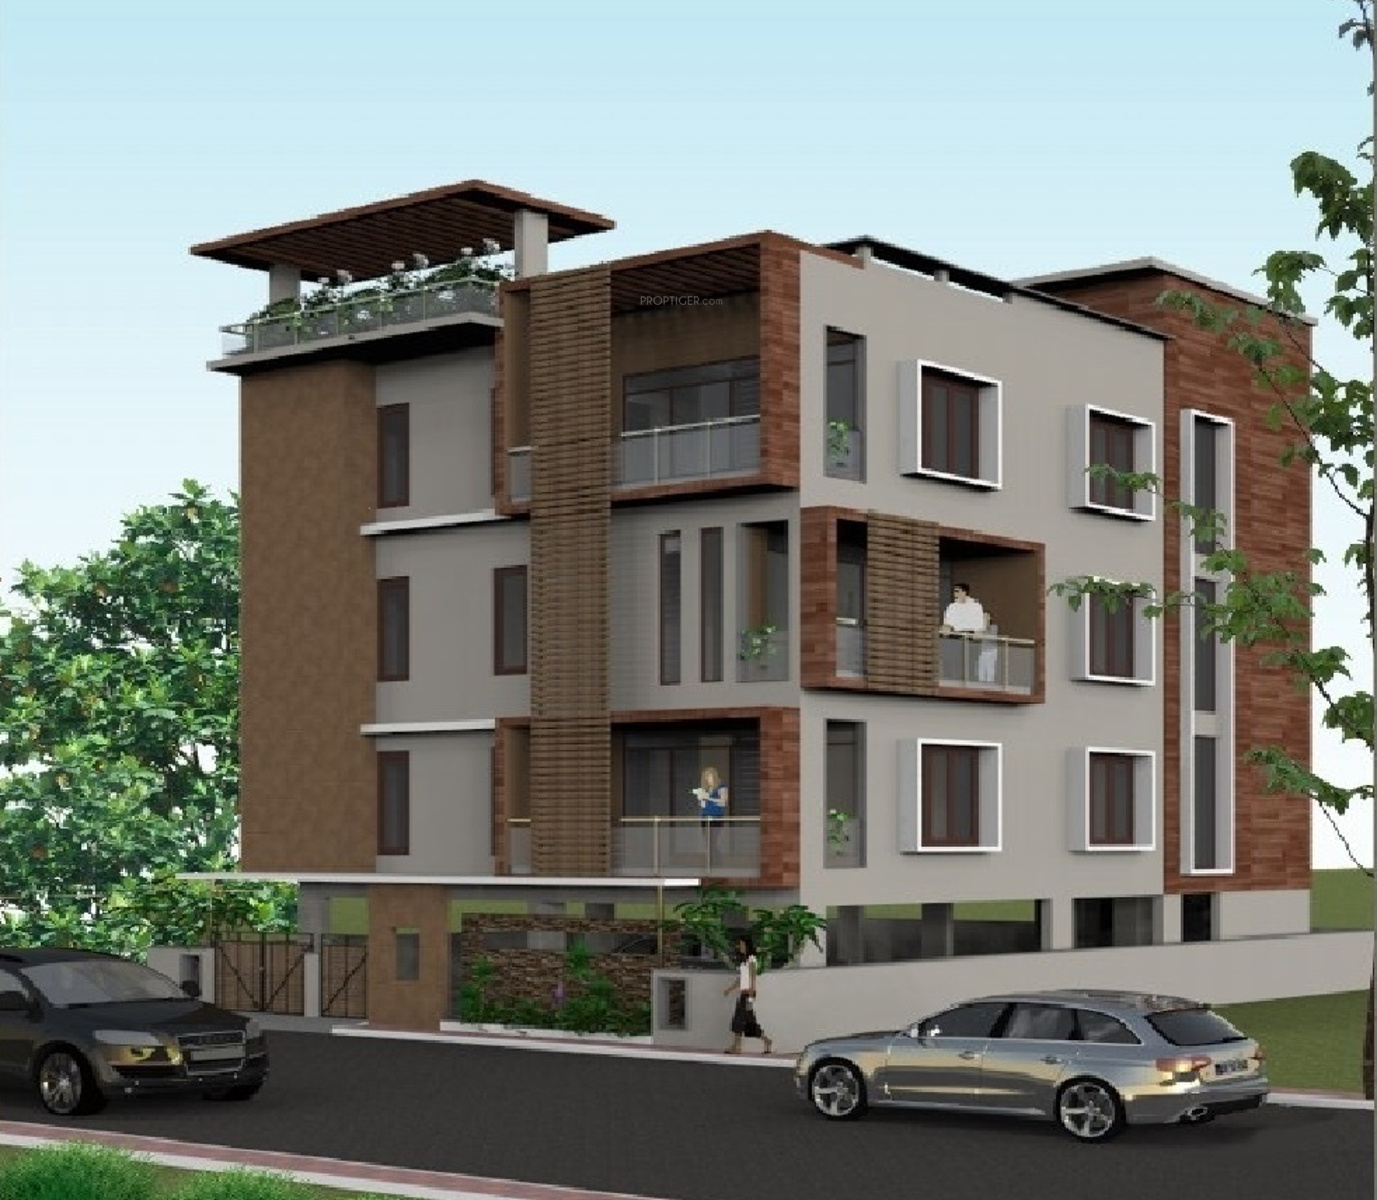 Aesthetic Apartment: 1800 Sq Ft 3 BHK 3T Apartment For Sale In Aesthetic